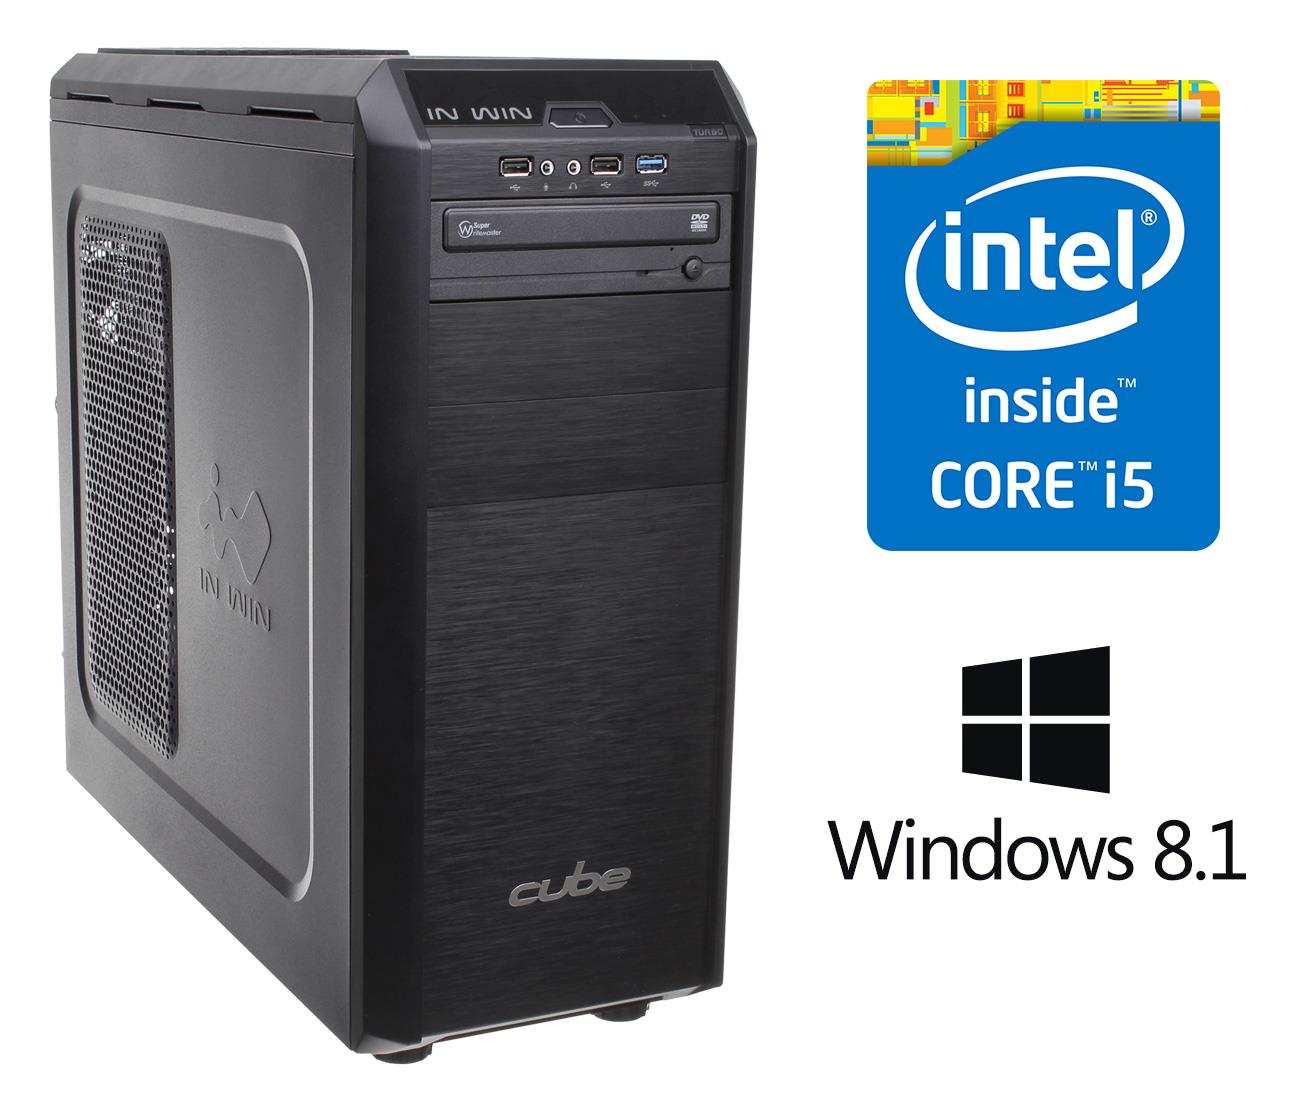 Cube Deluxe Core i5 Desktop System